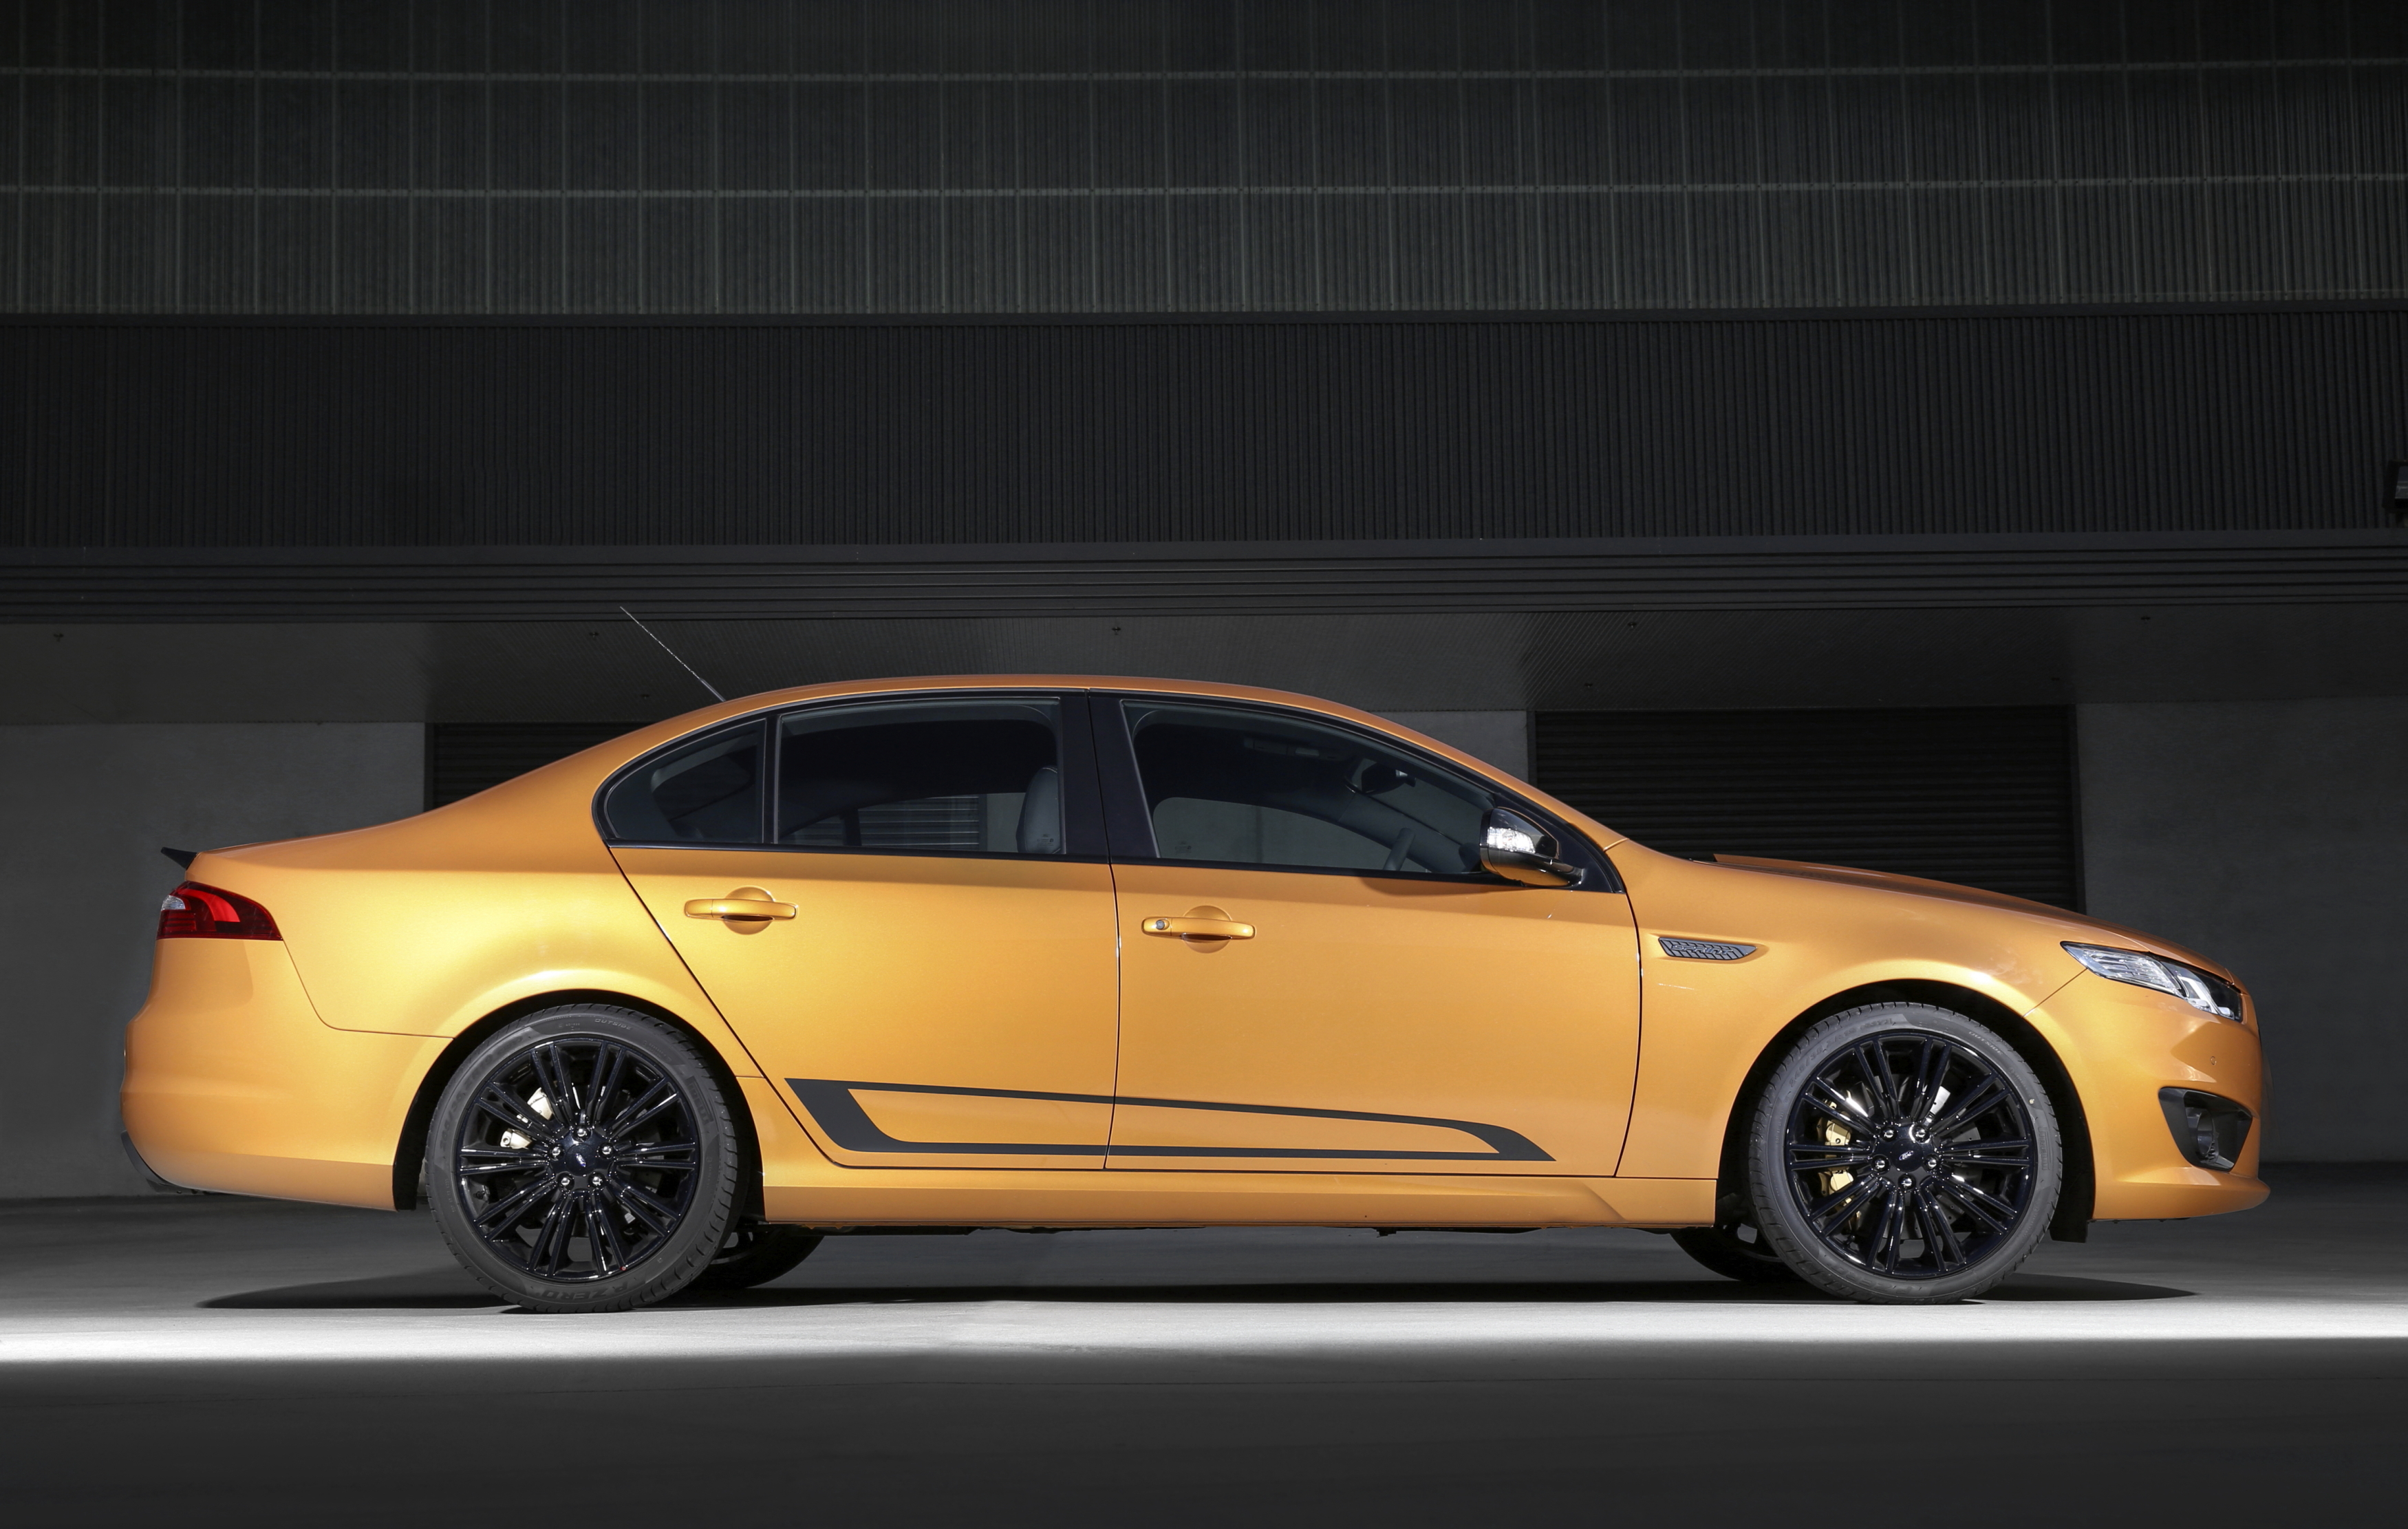 2019 Ford FG Falcon XR8 photo - 4